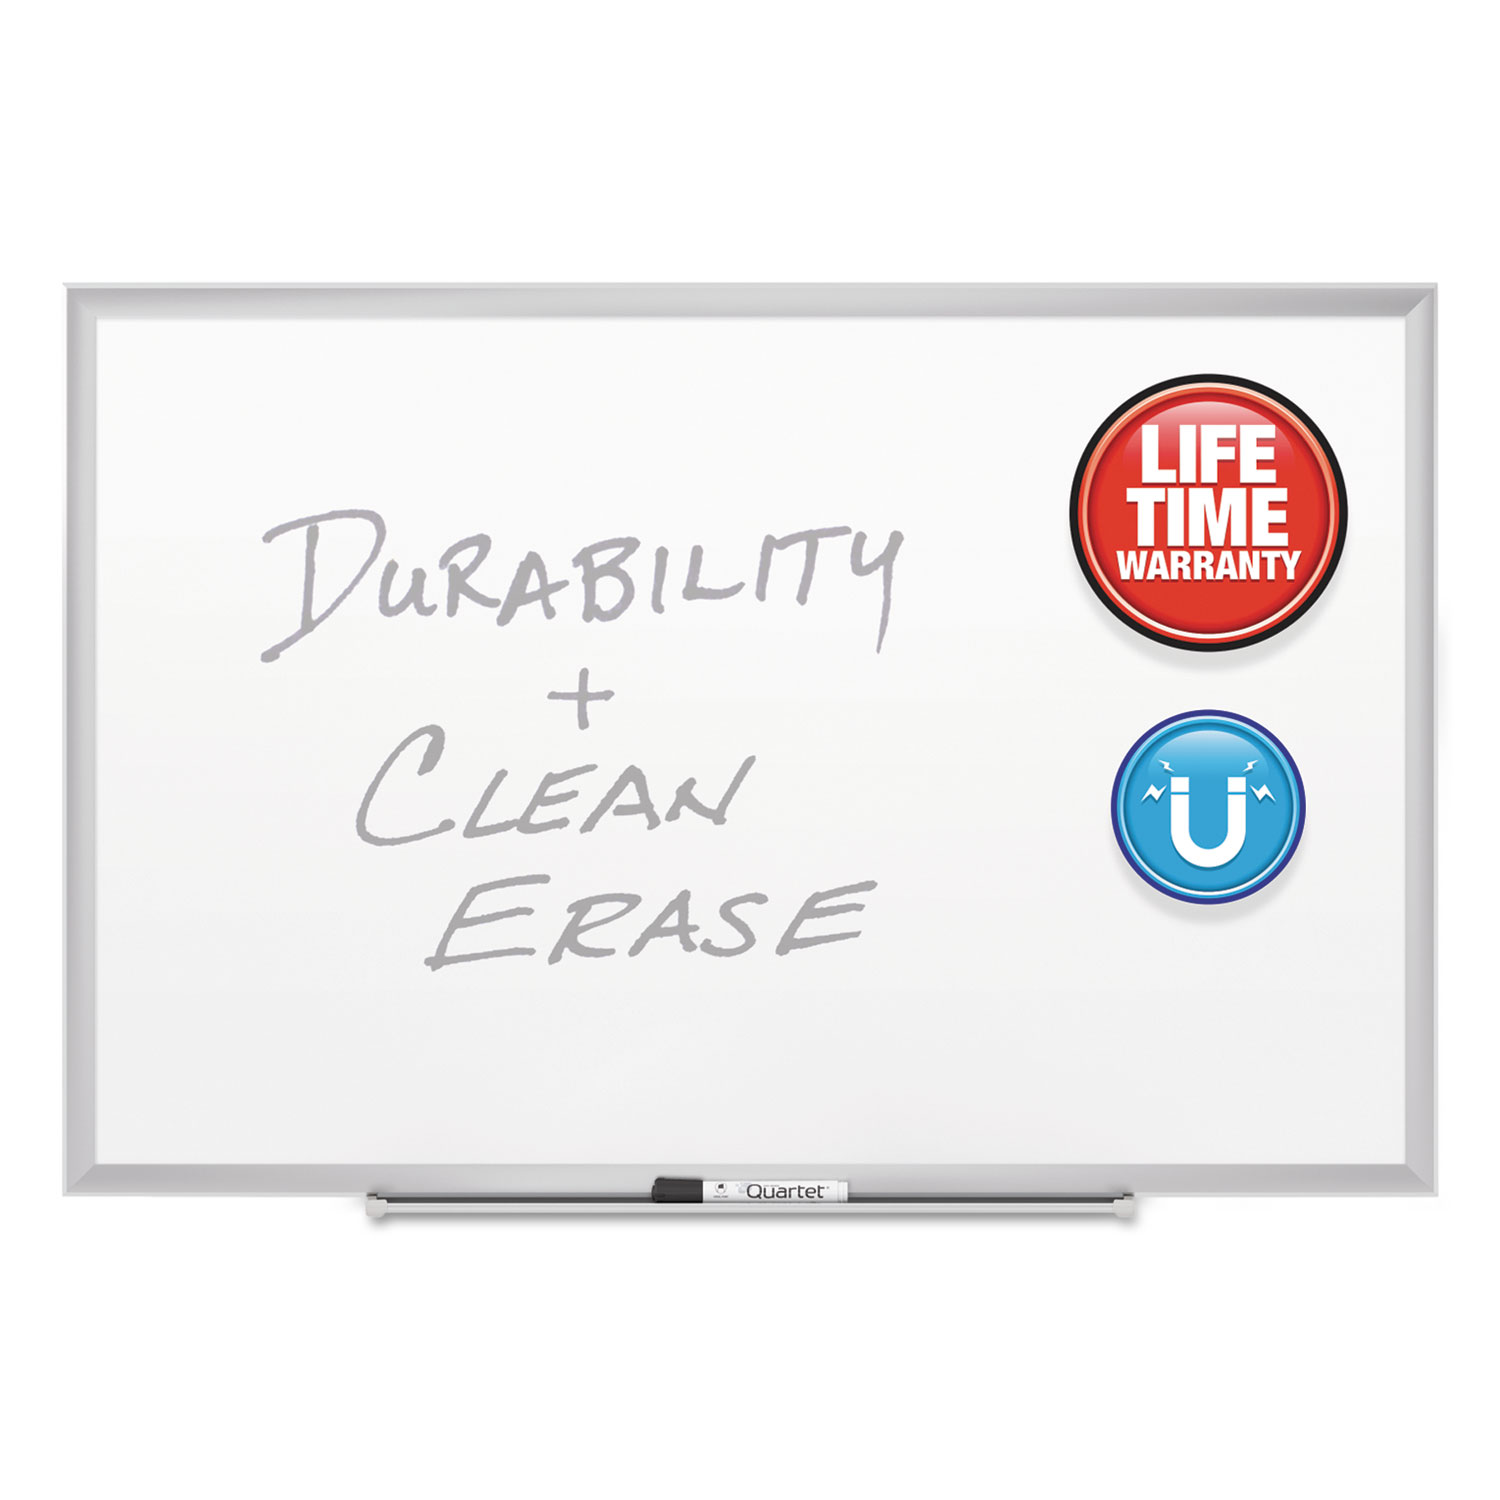 Classic Series Porcelain Magnetic Board, 96 x 48, White, Silver Aluminum Frame